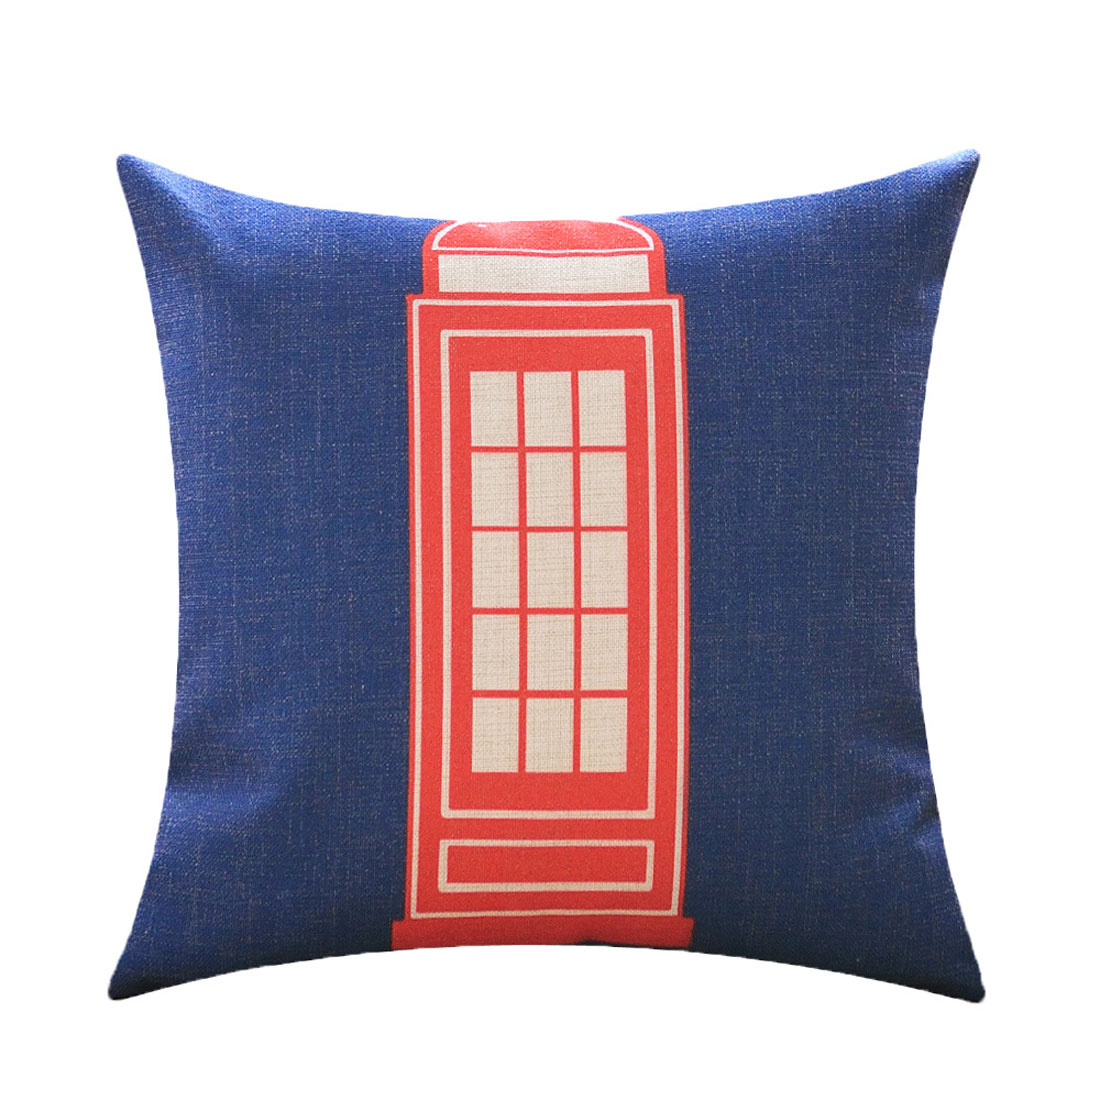 Sofa Cotton Linen English Telephone Booth Pattern Waist Throw Cushion Cover Pillow Case